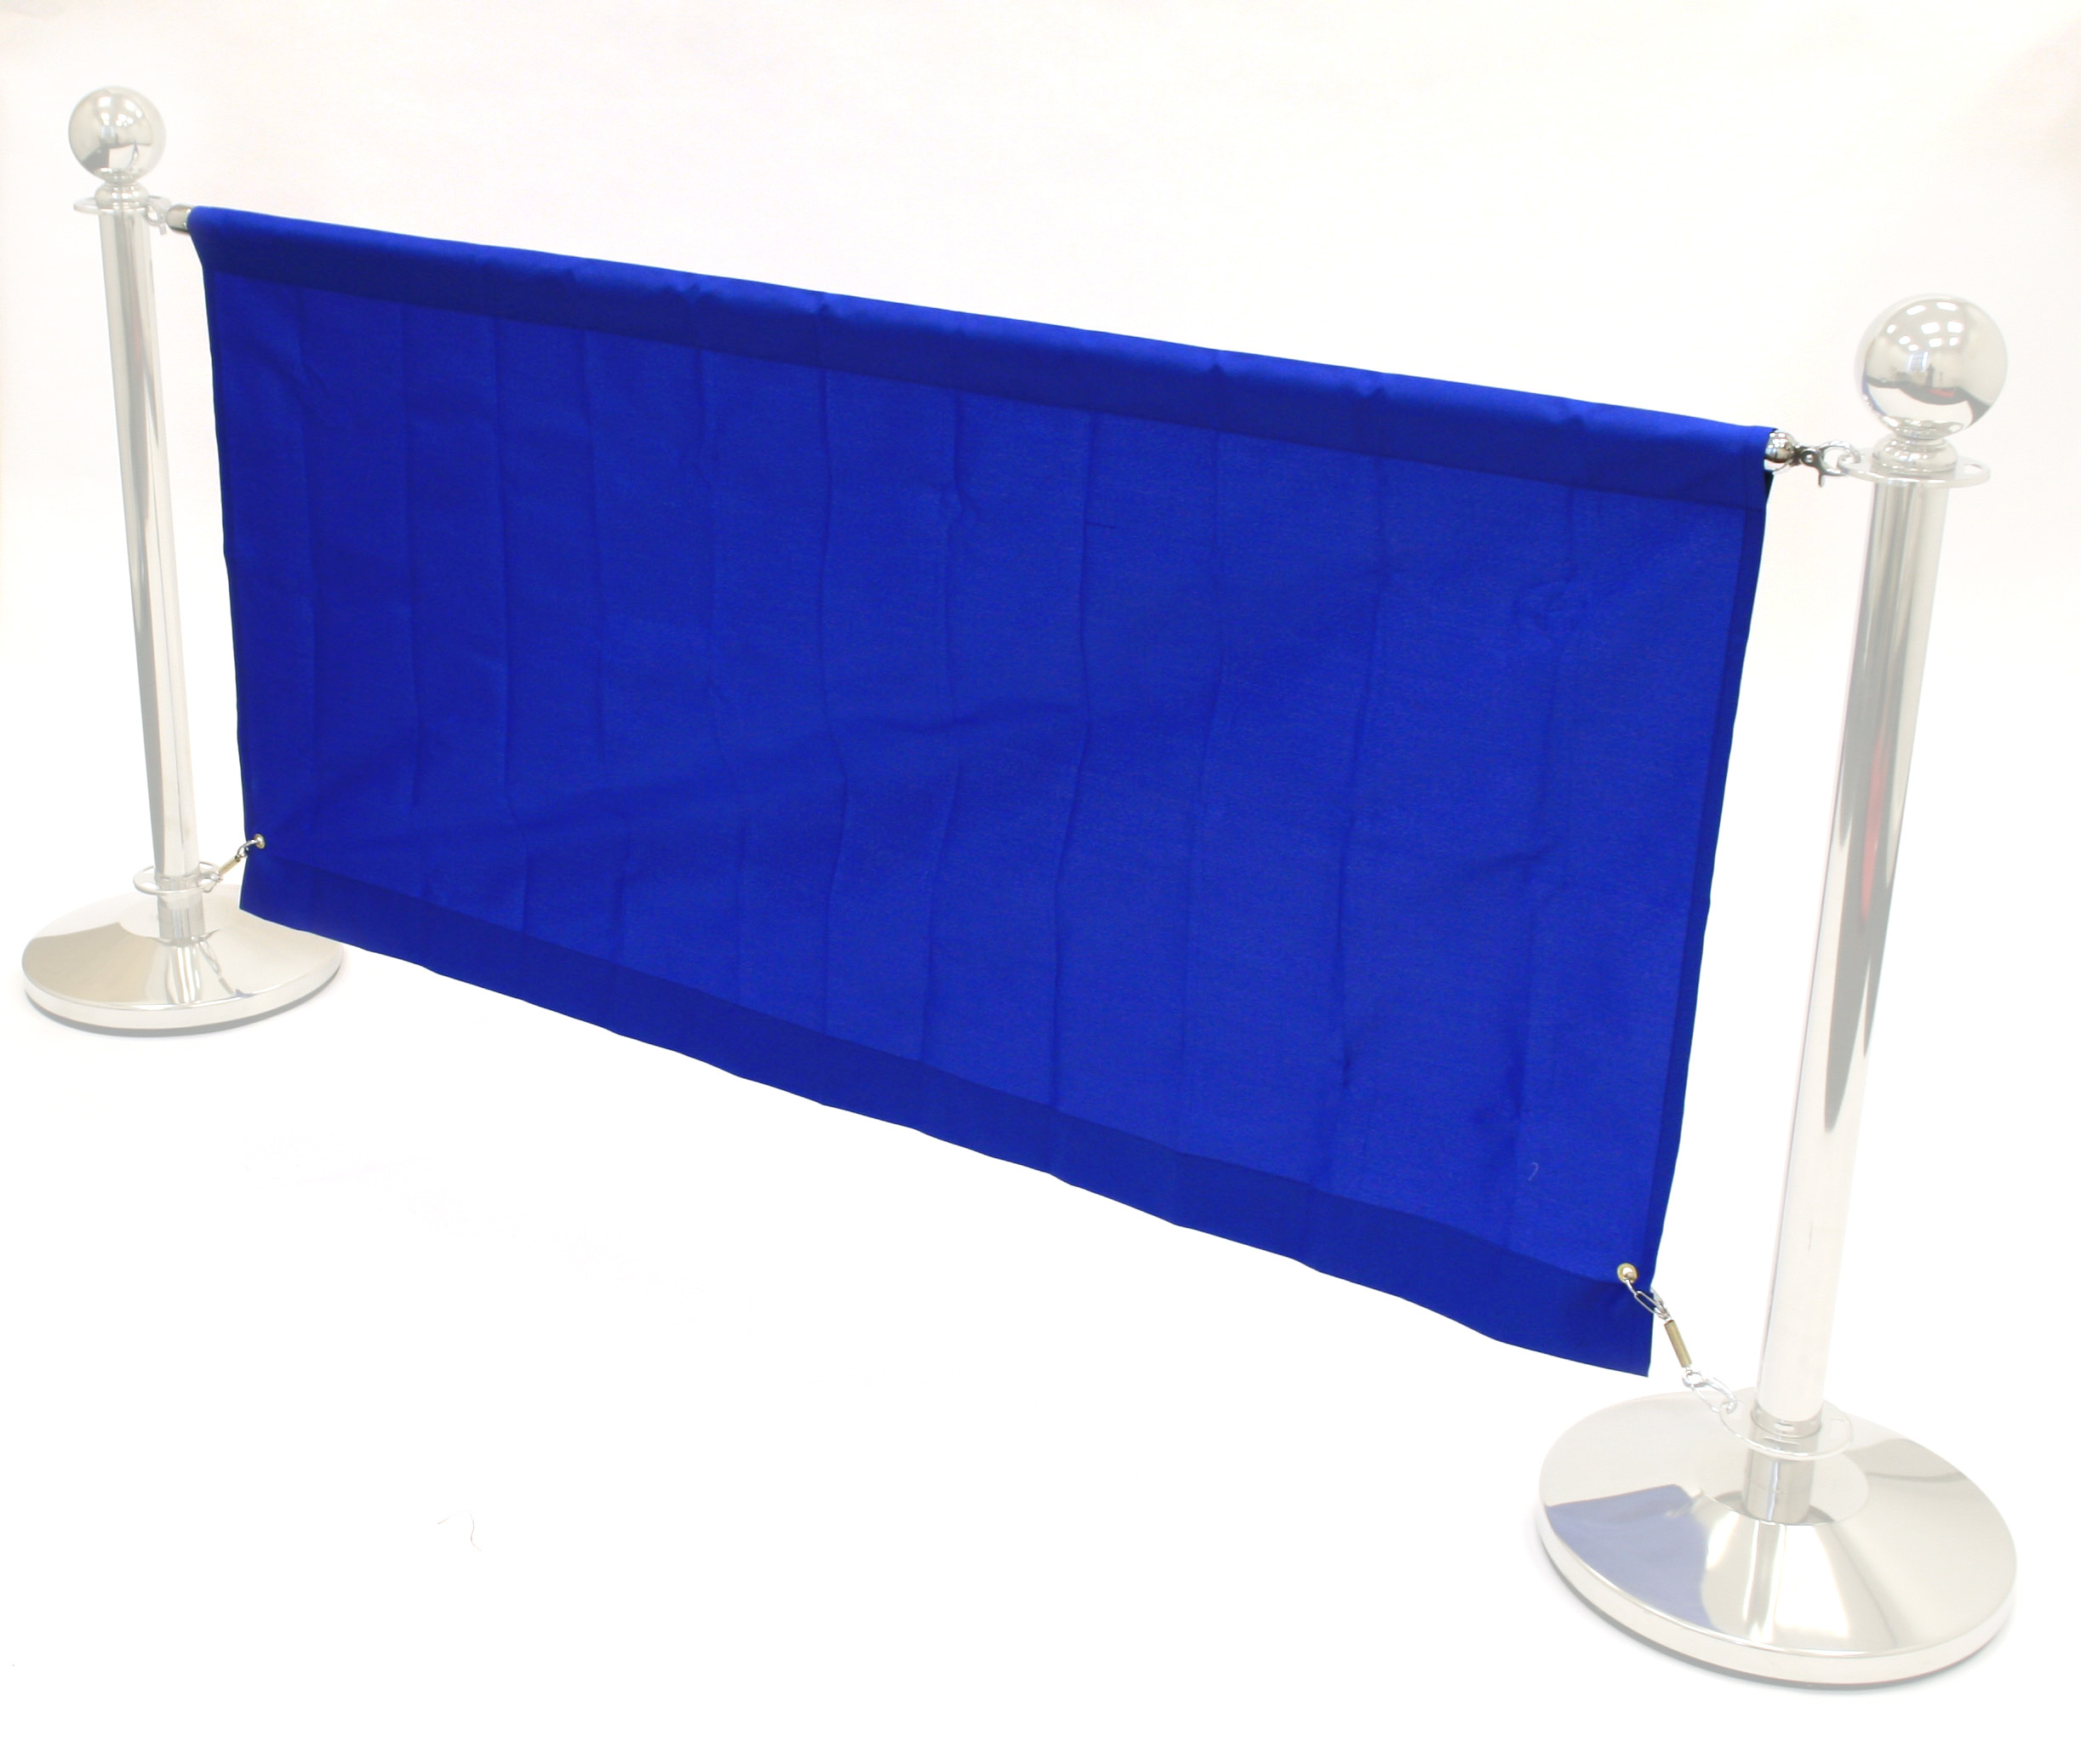 Blue 1.6m Cafe Banner - Blue Cafe Breeze Barrier - BE Furniture Sales